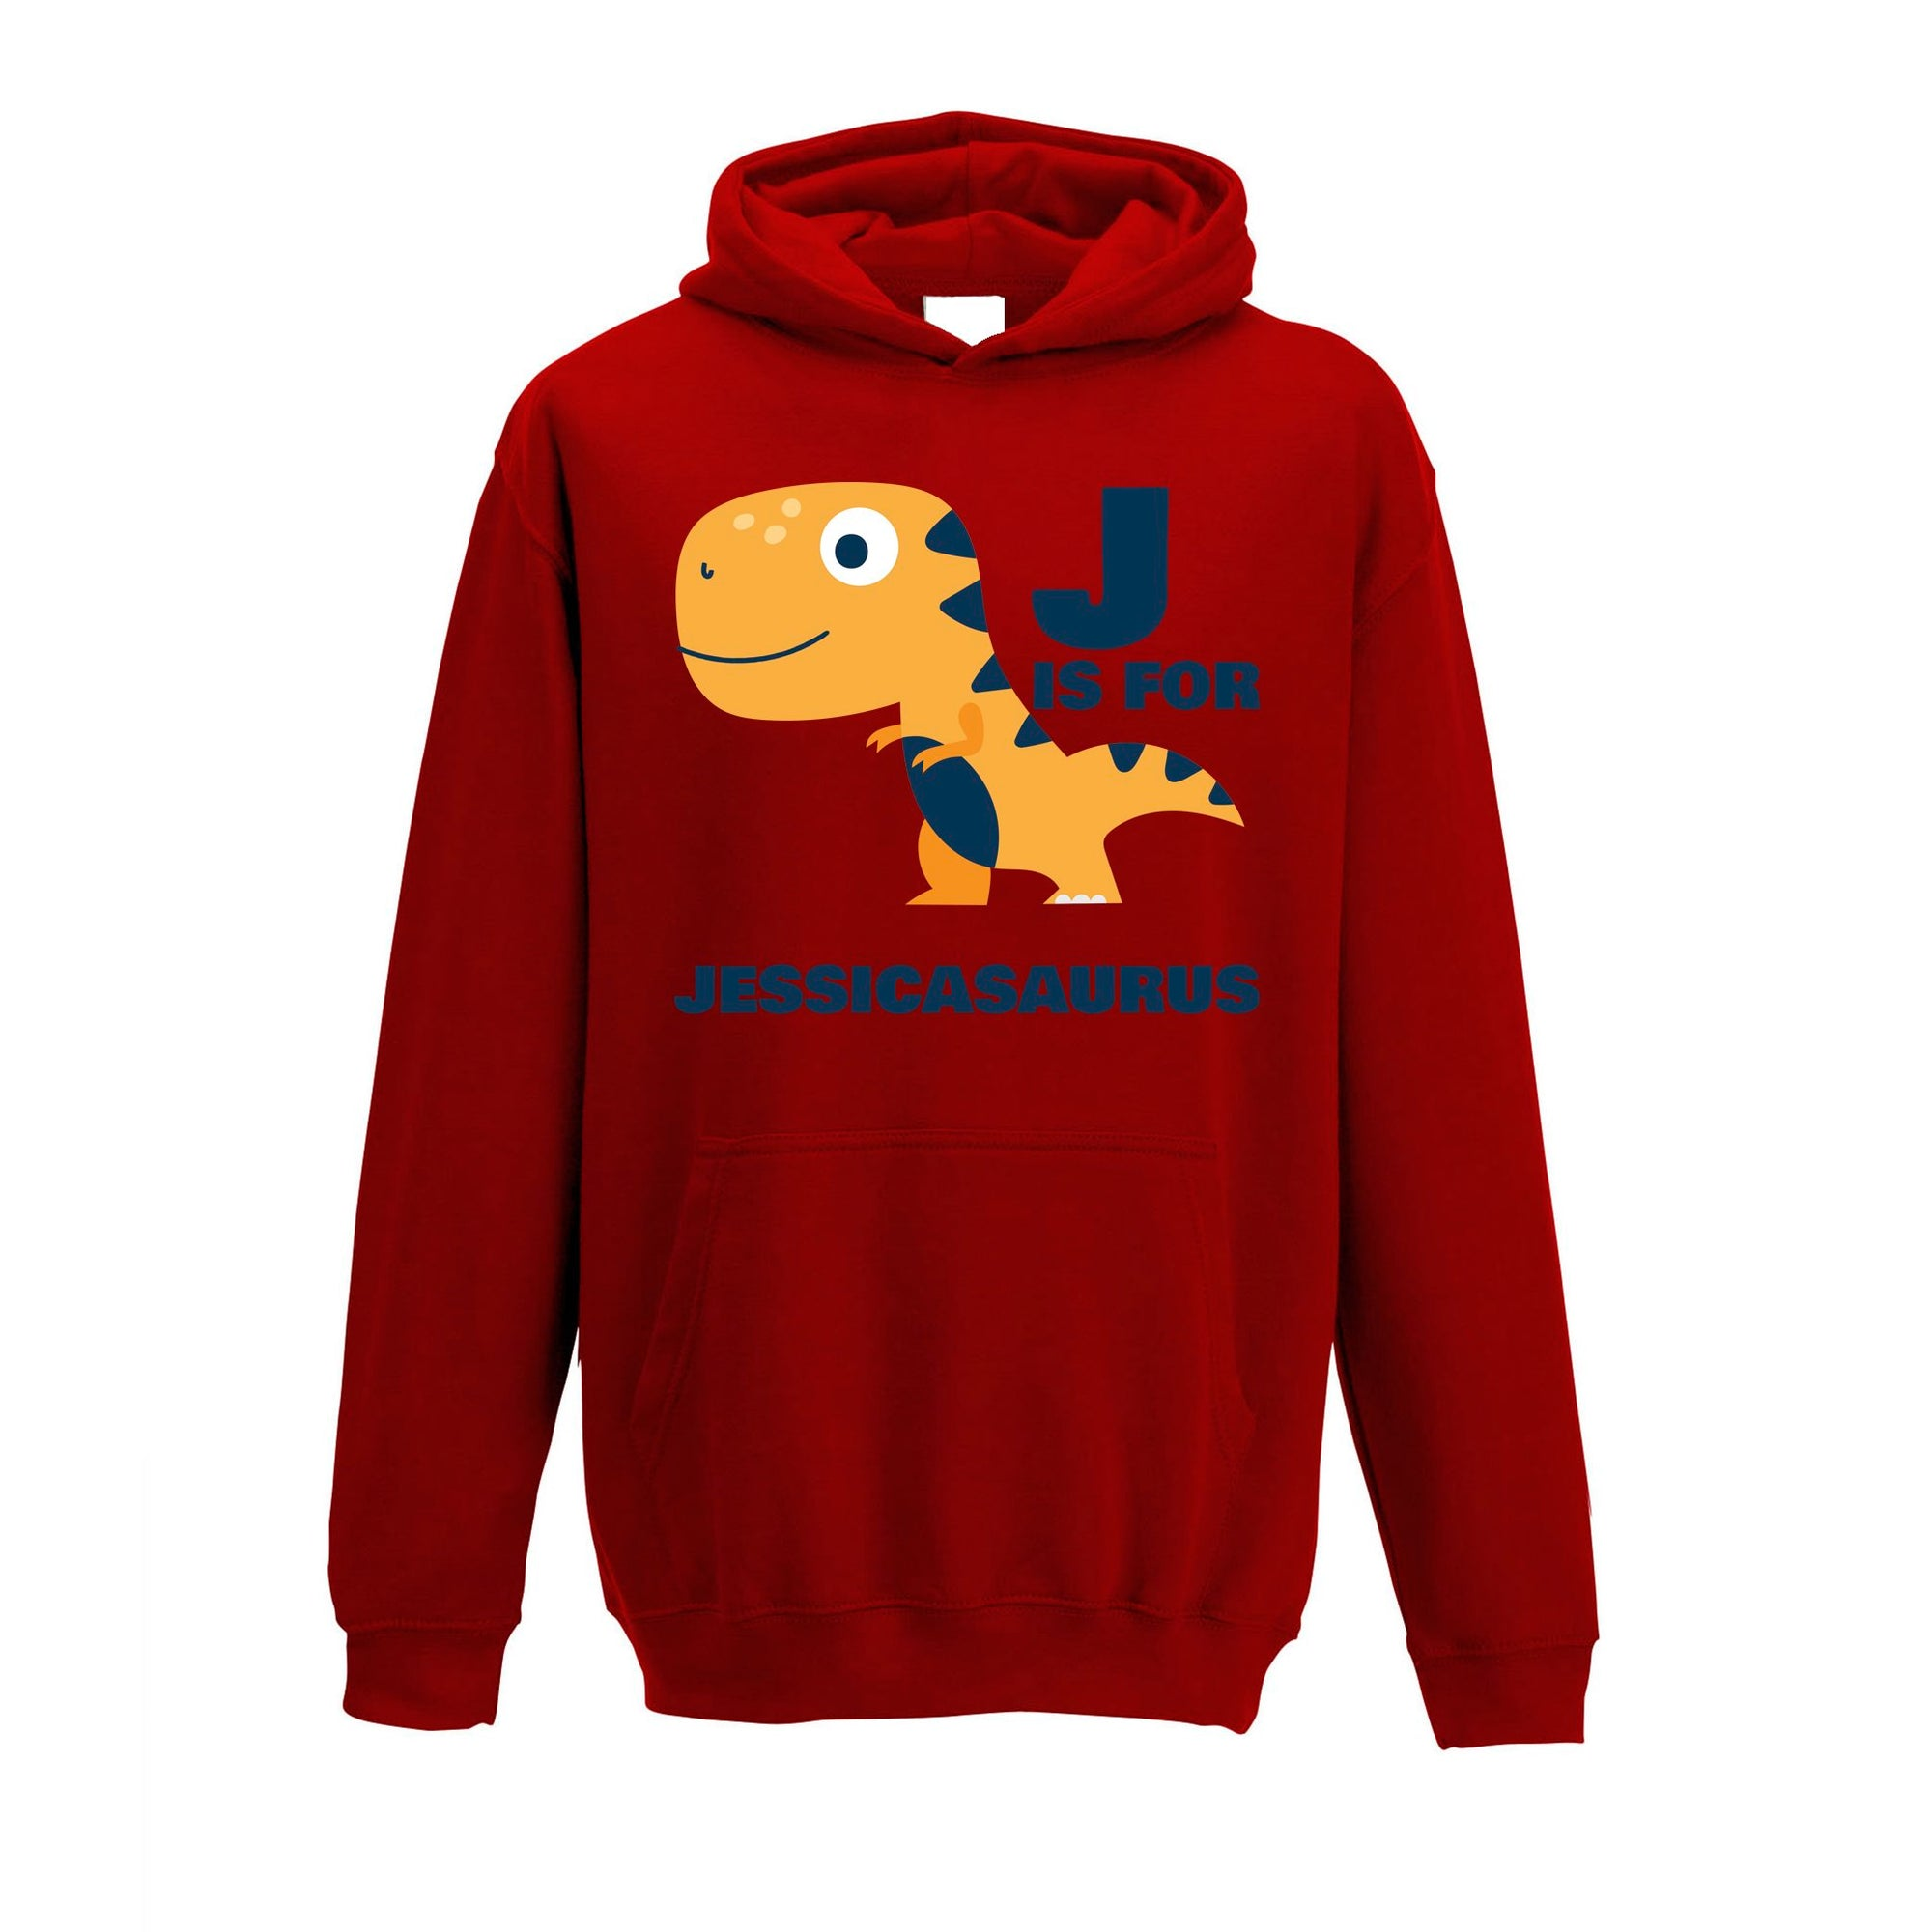 Dinosaur Kids Hoodie Jessica Saurus Birth Name Childs